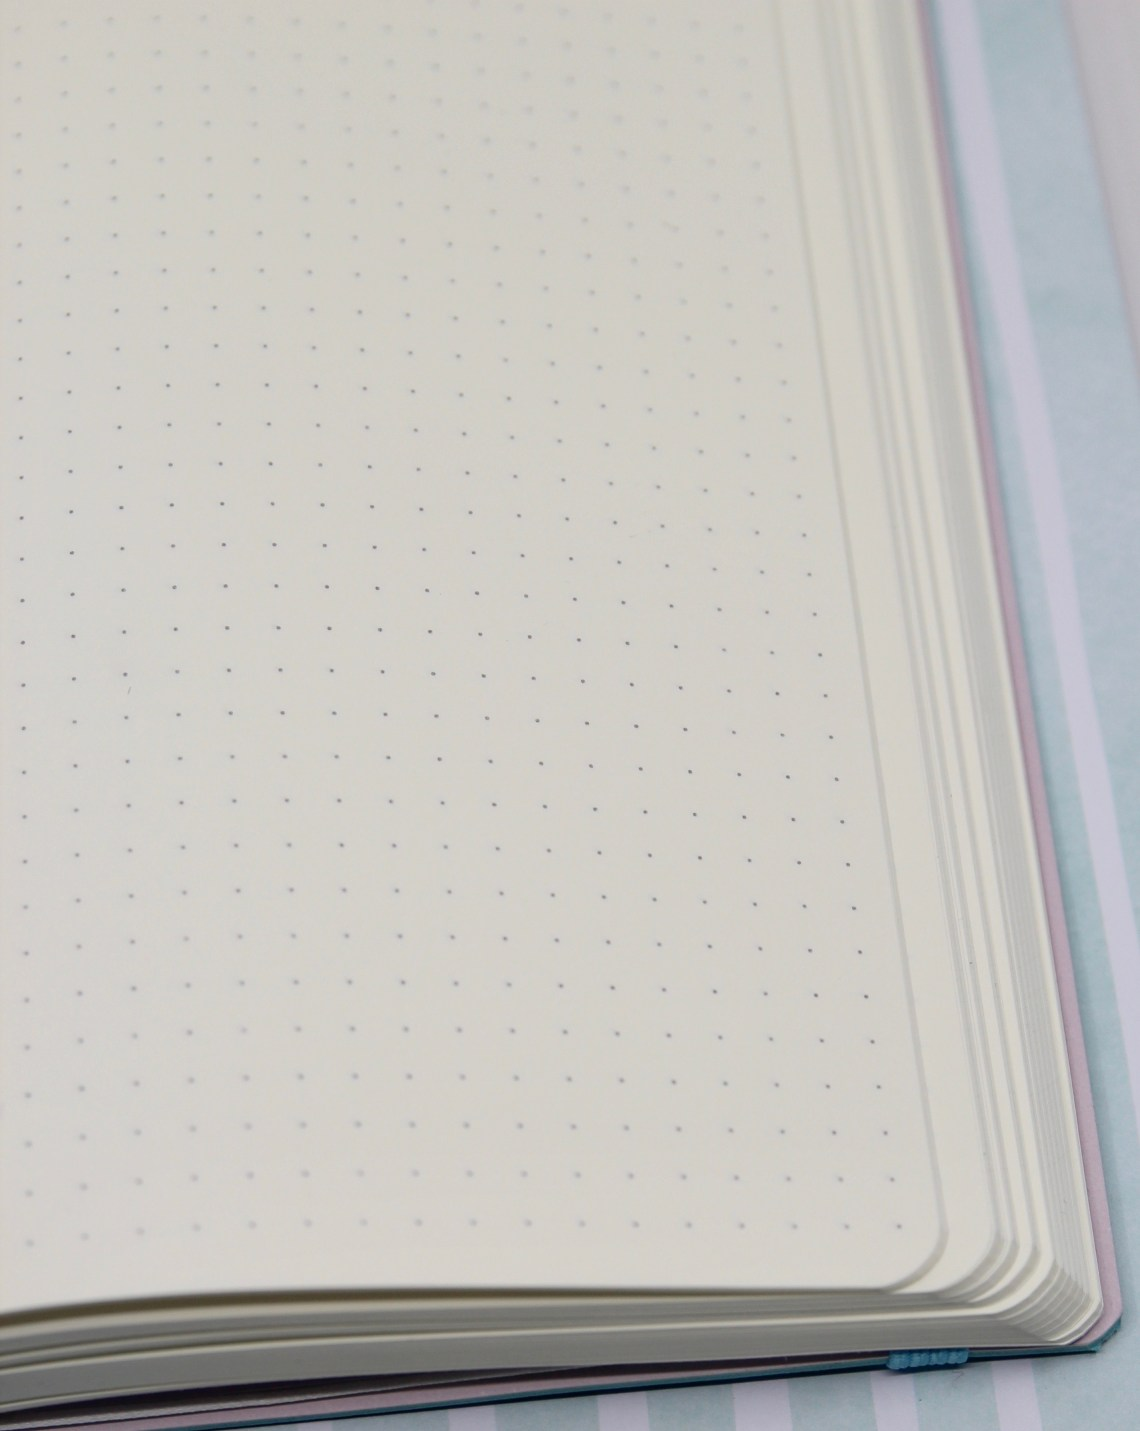 notebook review hippo noto a cream dot grid the well appointed  the paper is luscious i ordered the dot grid because it s my favorite and i wasn t disappointed the paper itself is smooth and my nibs felt like butter